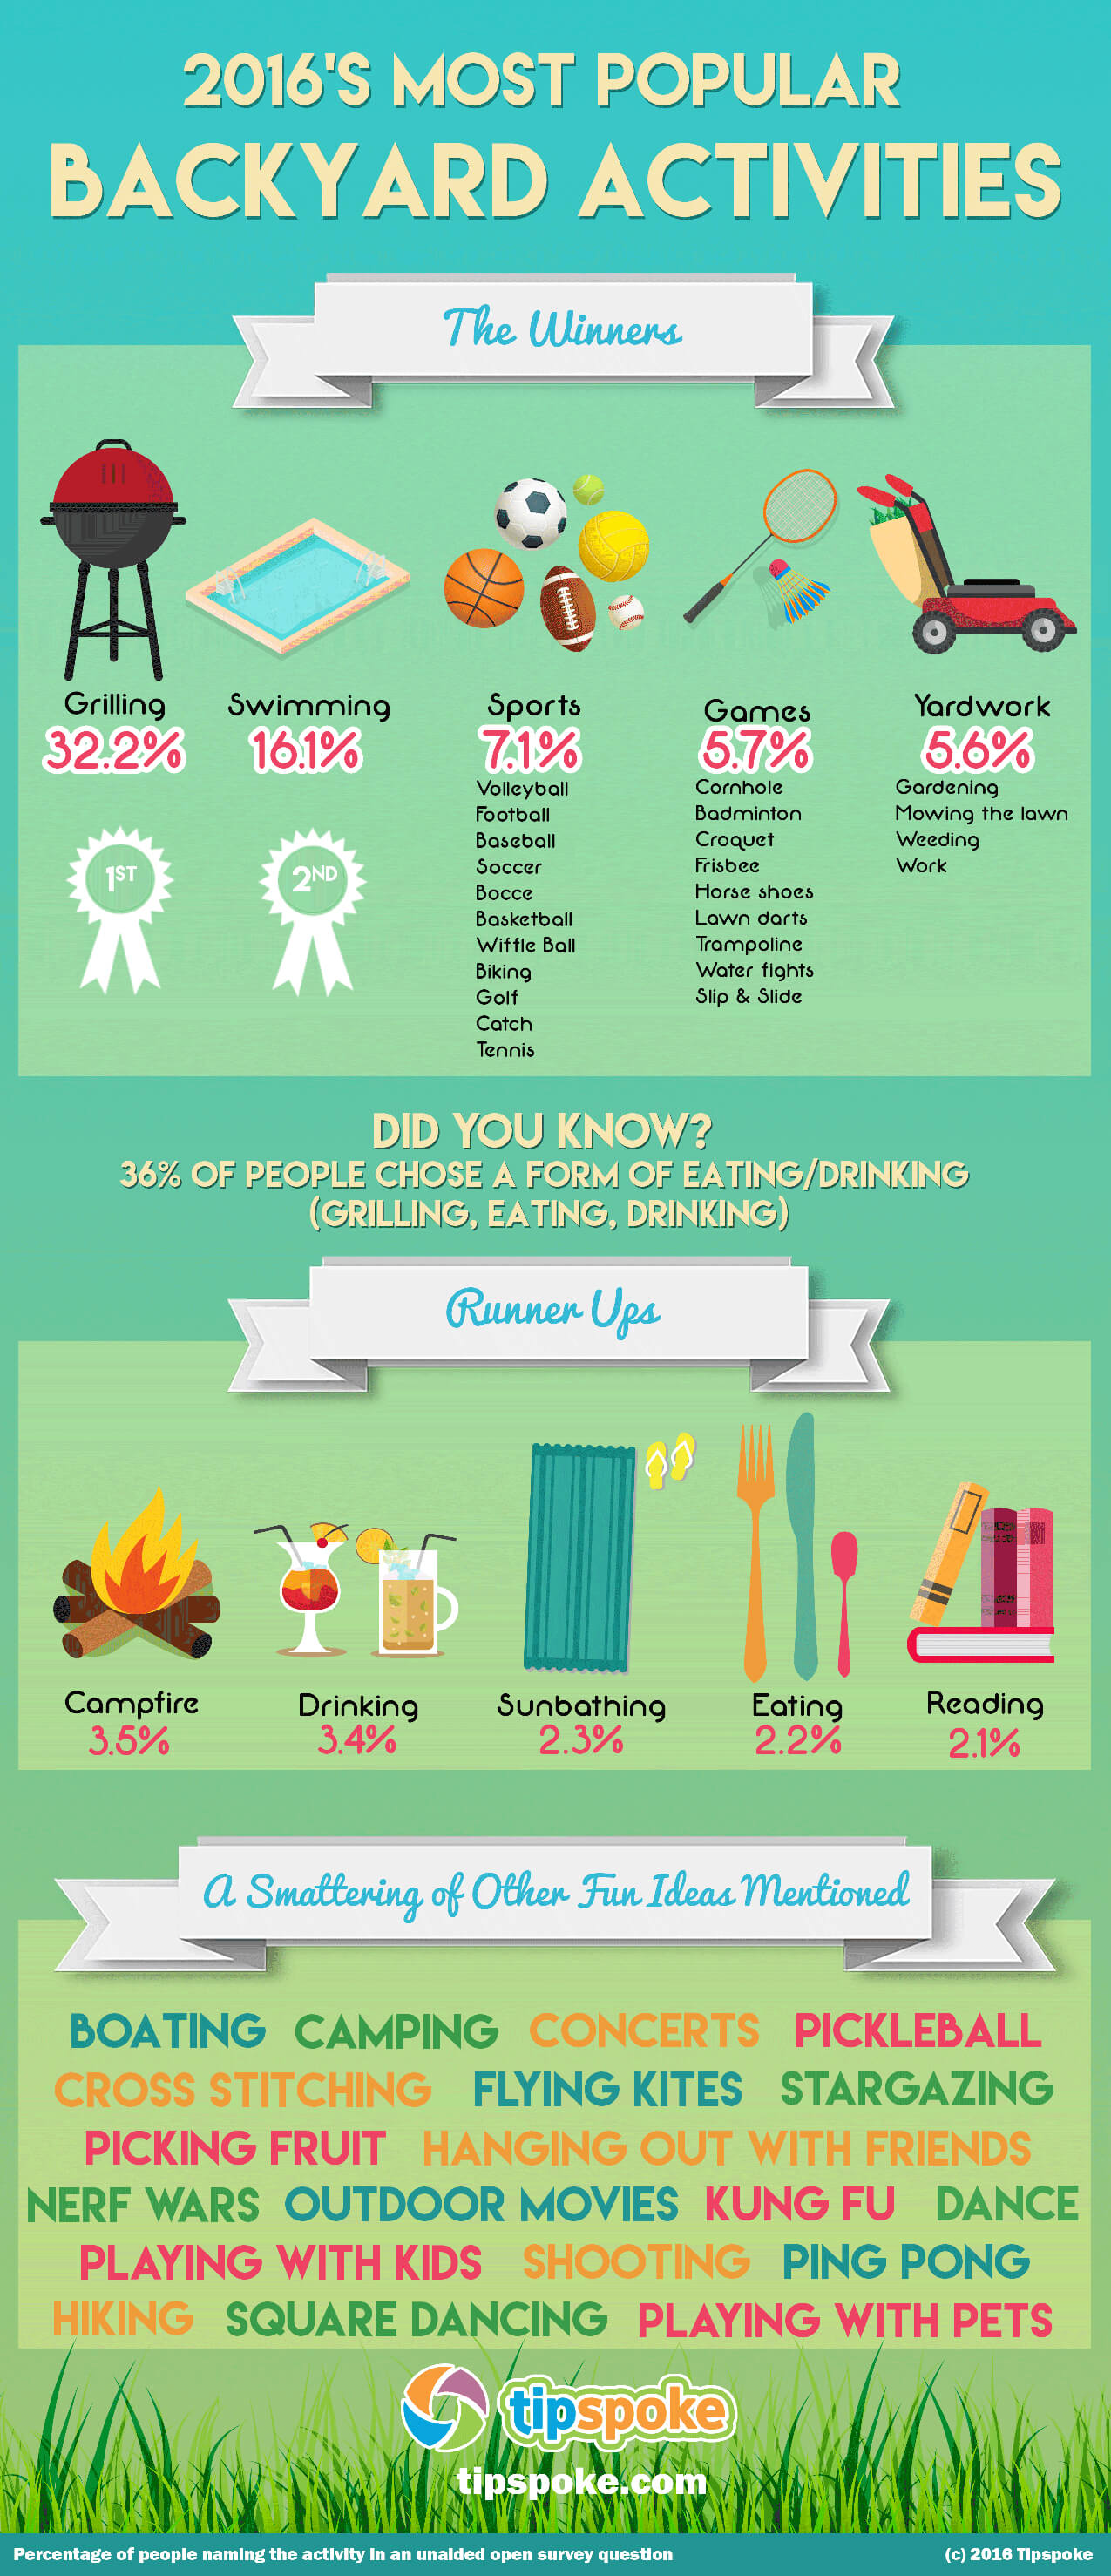 Web-Res-Backyard-Activities-infographic